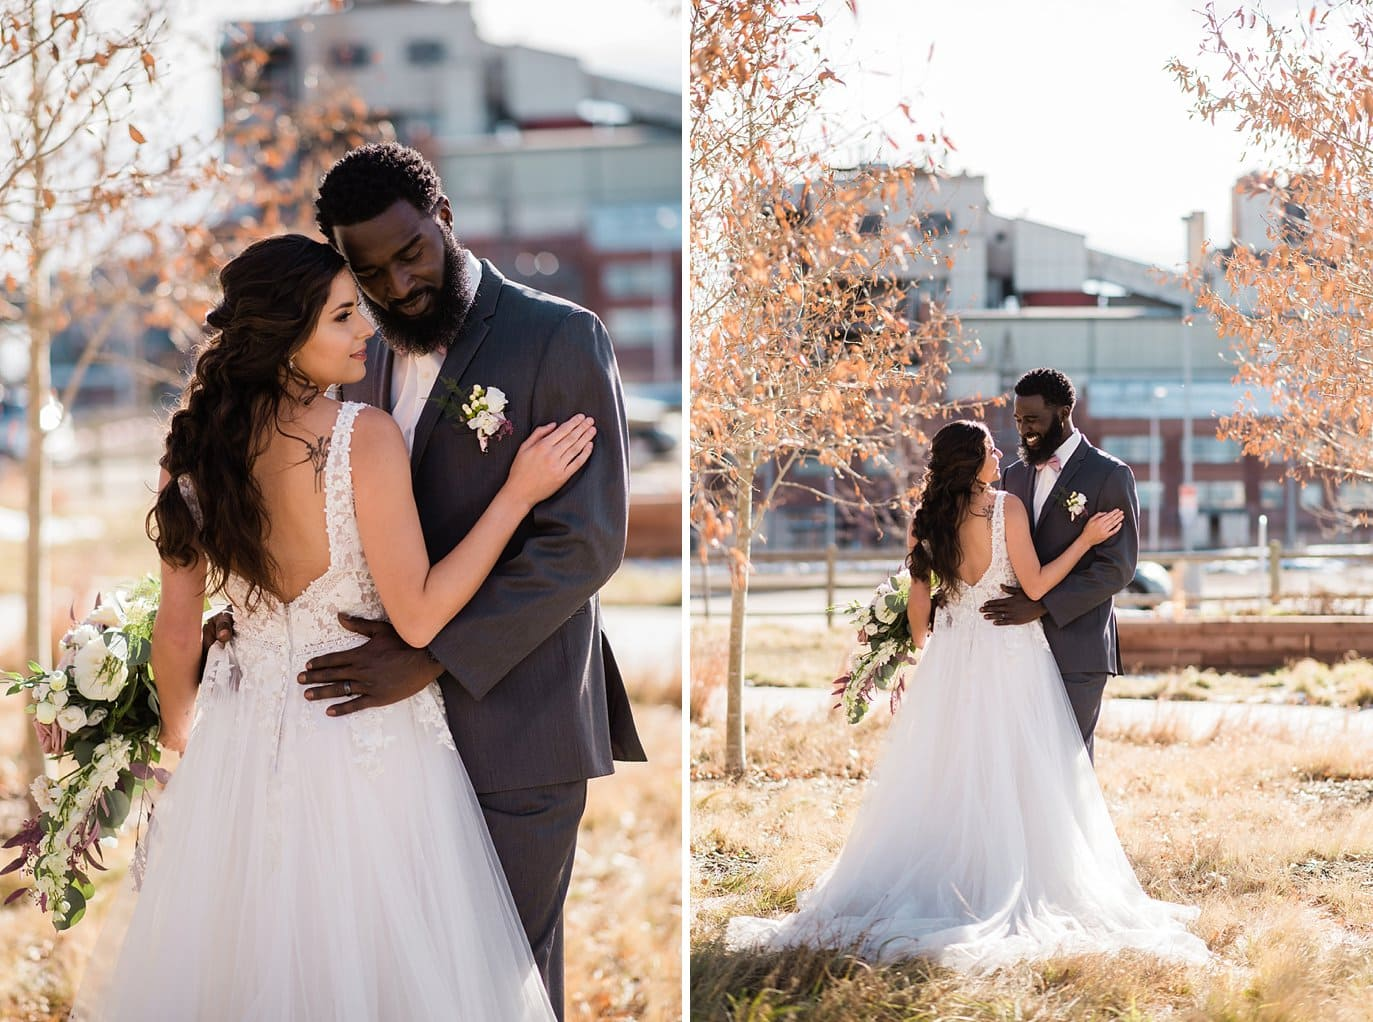 bride and groom romantic fall photo in sunny trees at Shyft Denver wedding by Denver wedding photographer Jennie Crate photographer